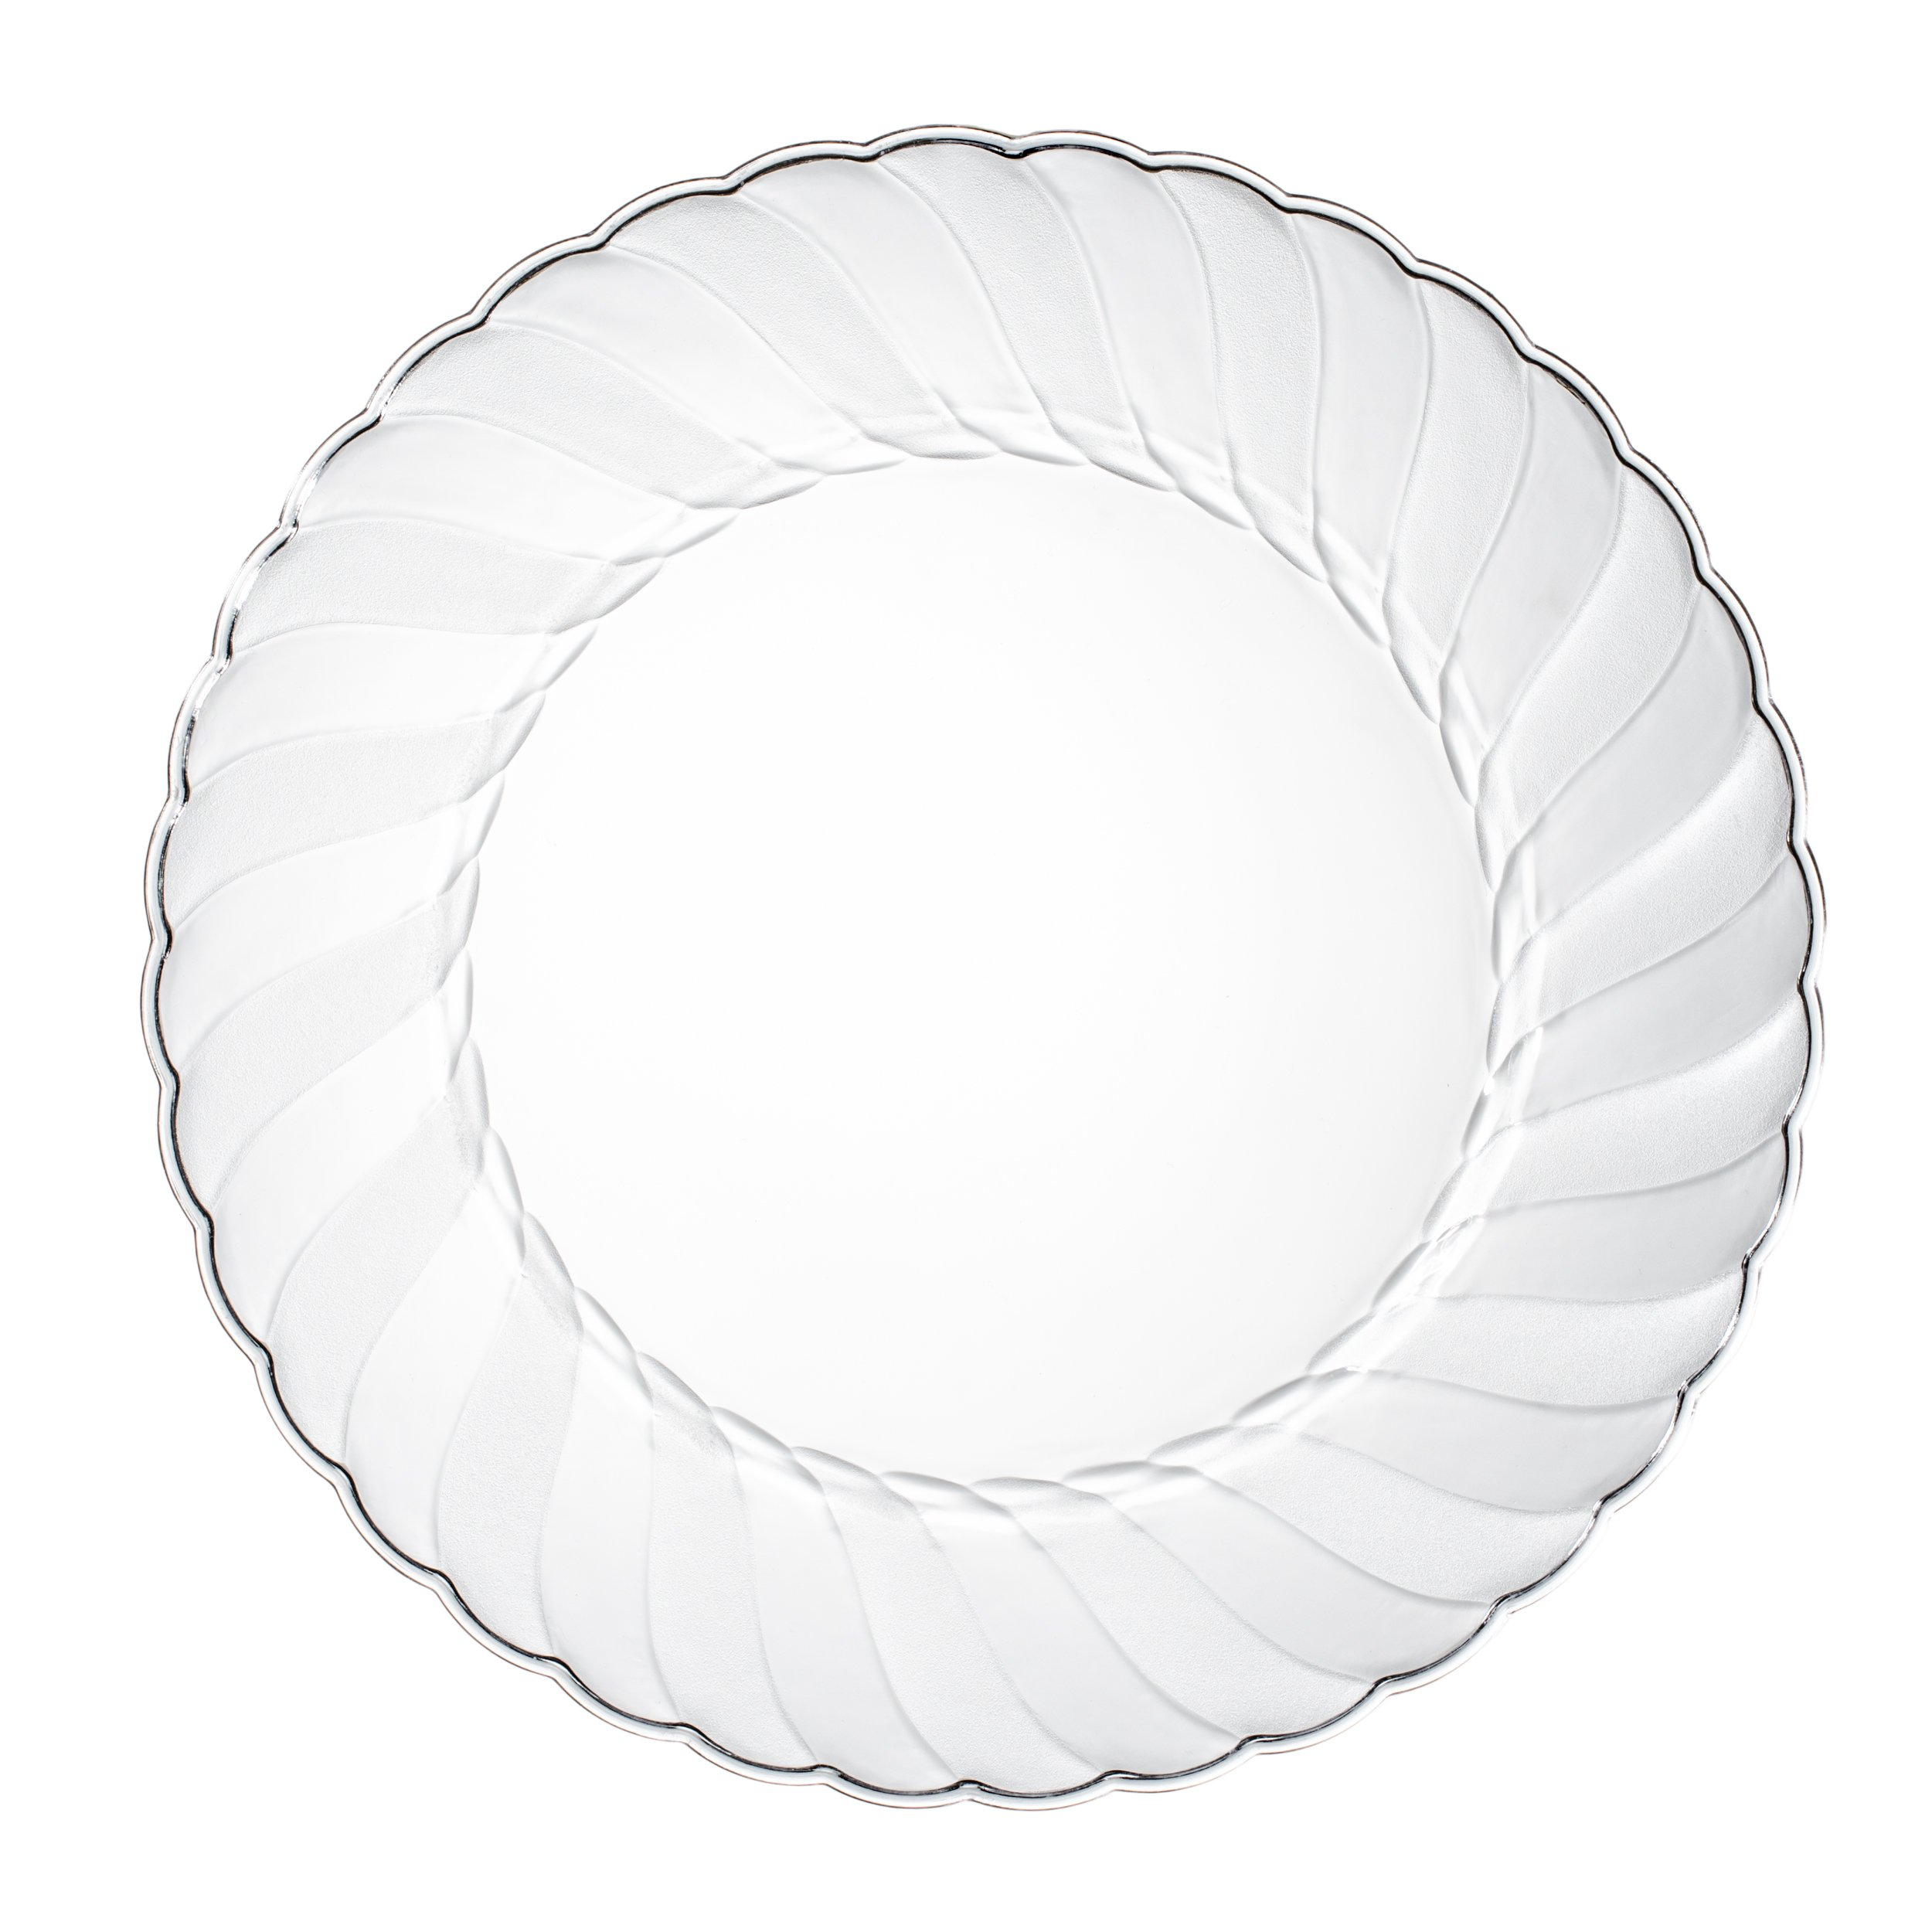 Premium Clear Plastic Plates By Alpha & Sigma - 50pcs 9'' Food Grade Clear Plastic Plates - Washable & Reusable - Perfect For Birthdays, Parties, Celebrations, Picnics, Buffets, Catering & More by Alpha & Sigma